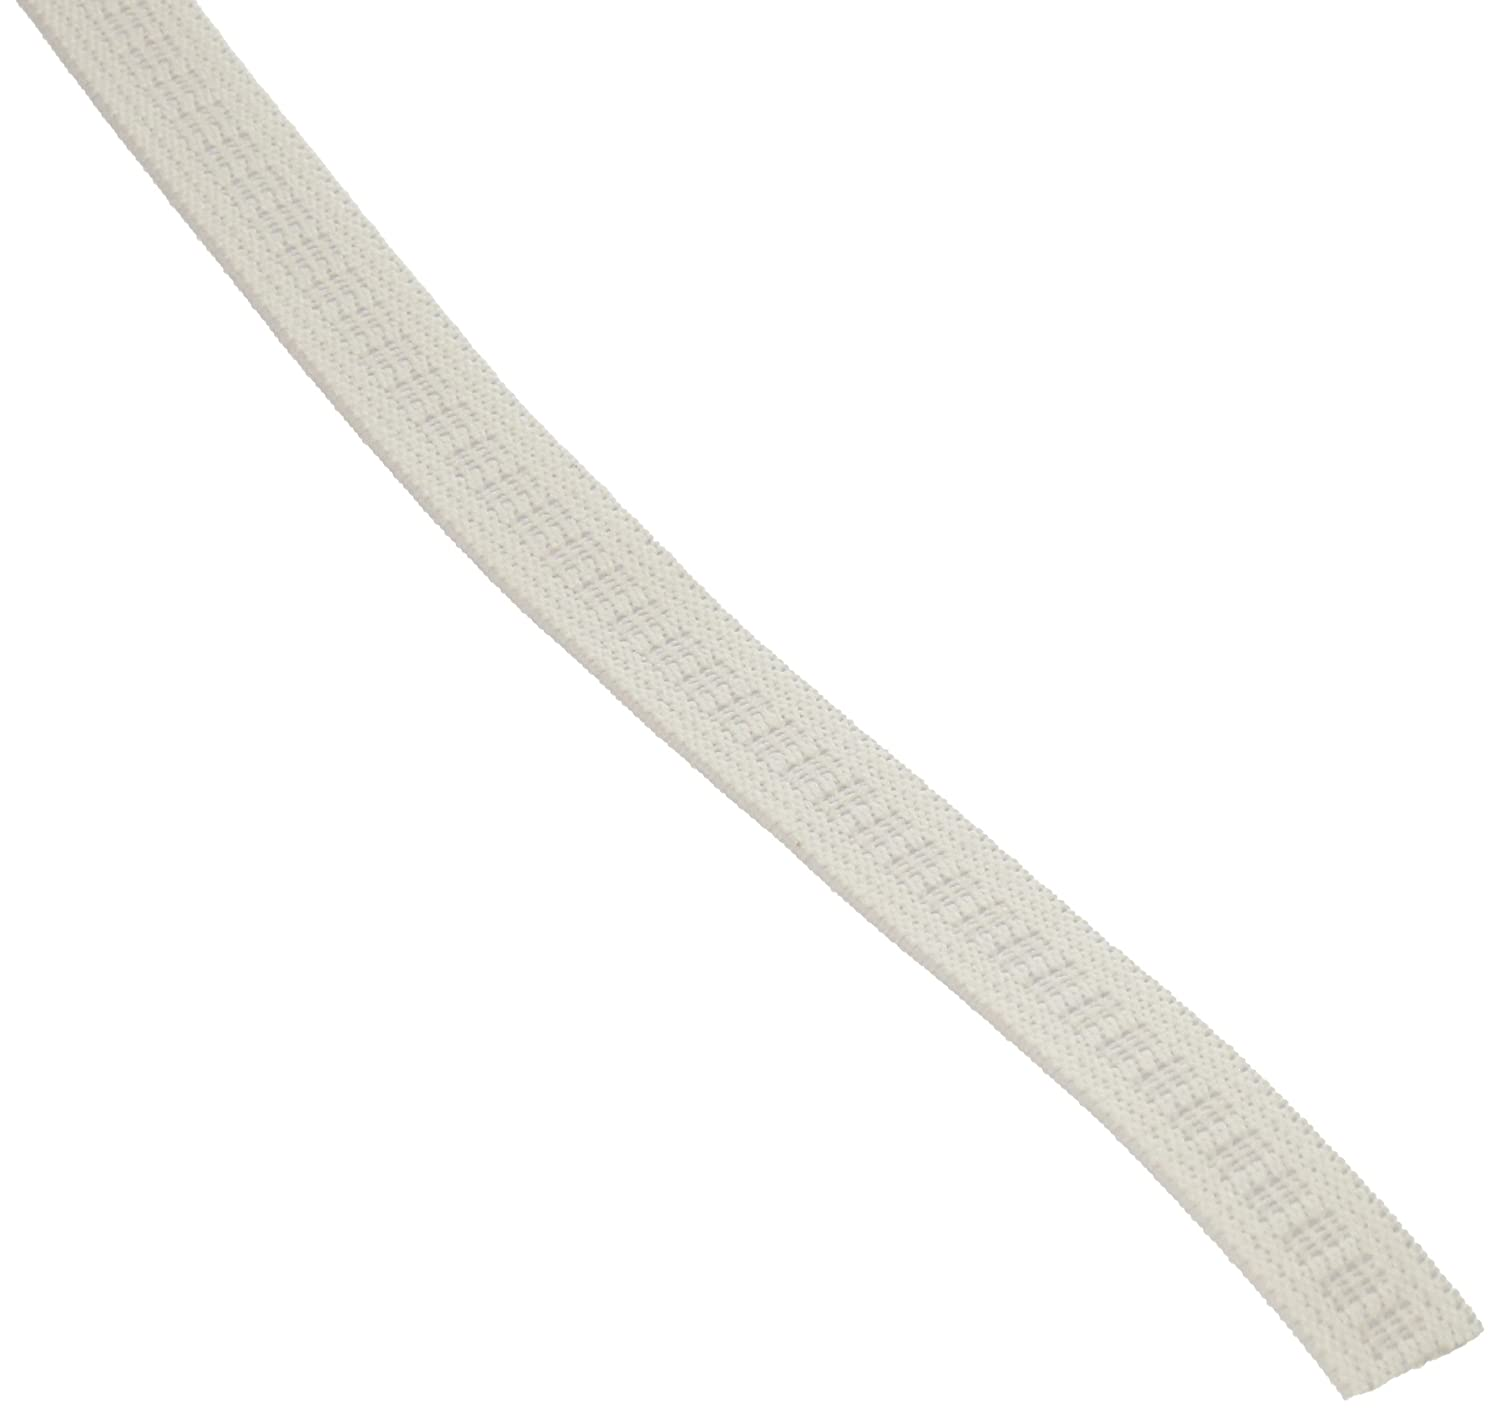 White Dritz 9405W Non-Roll Woven Elastic 1//2-Inch by 30-Yard